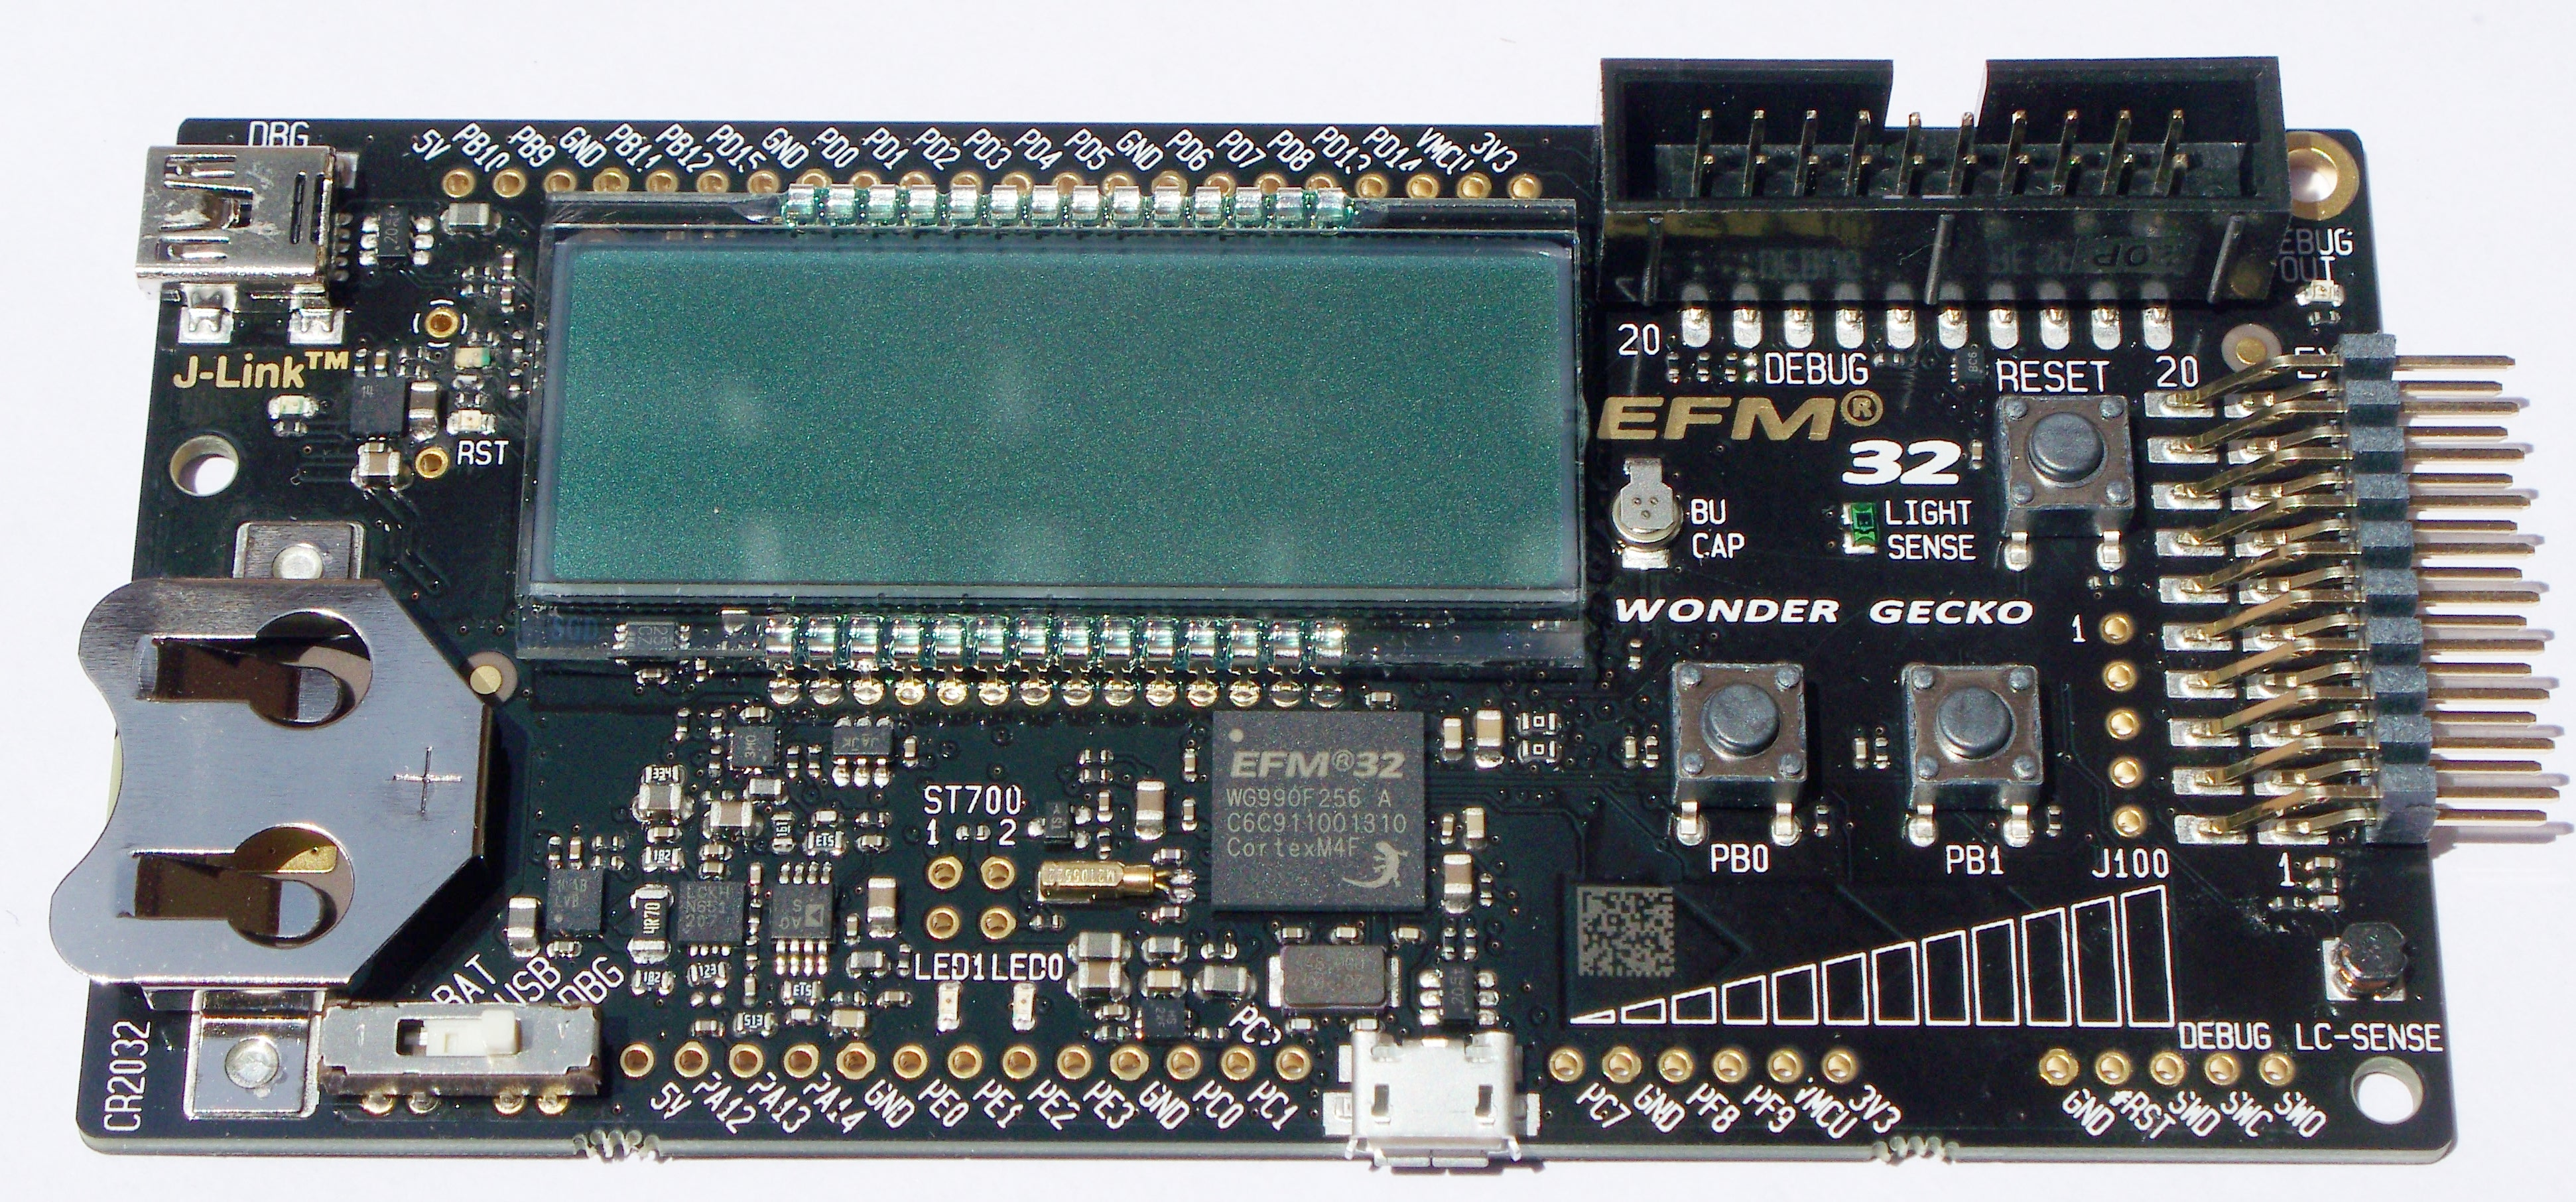 10 Best Microcontroller Boards For Hobbyists And Engineers